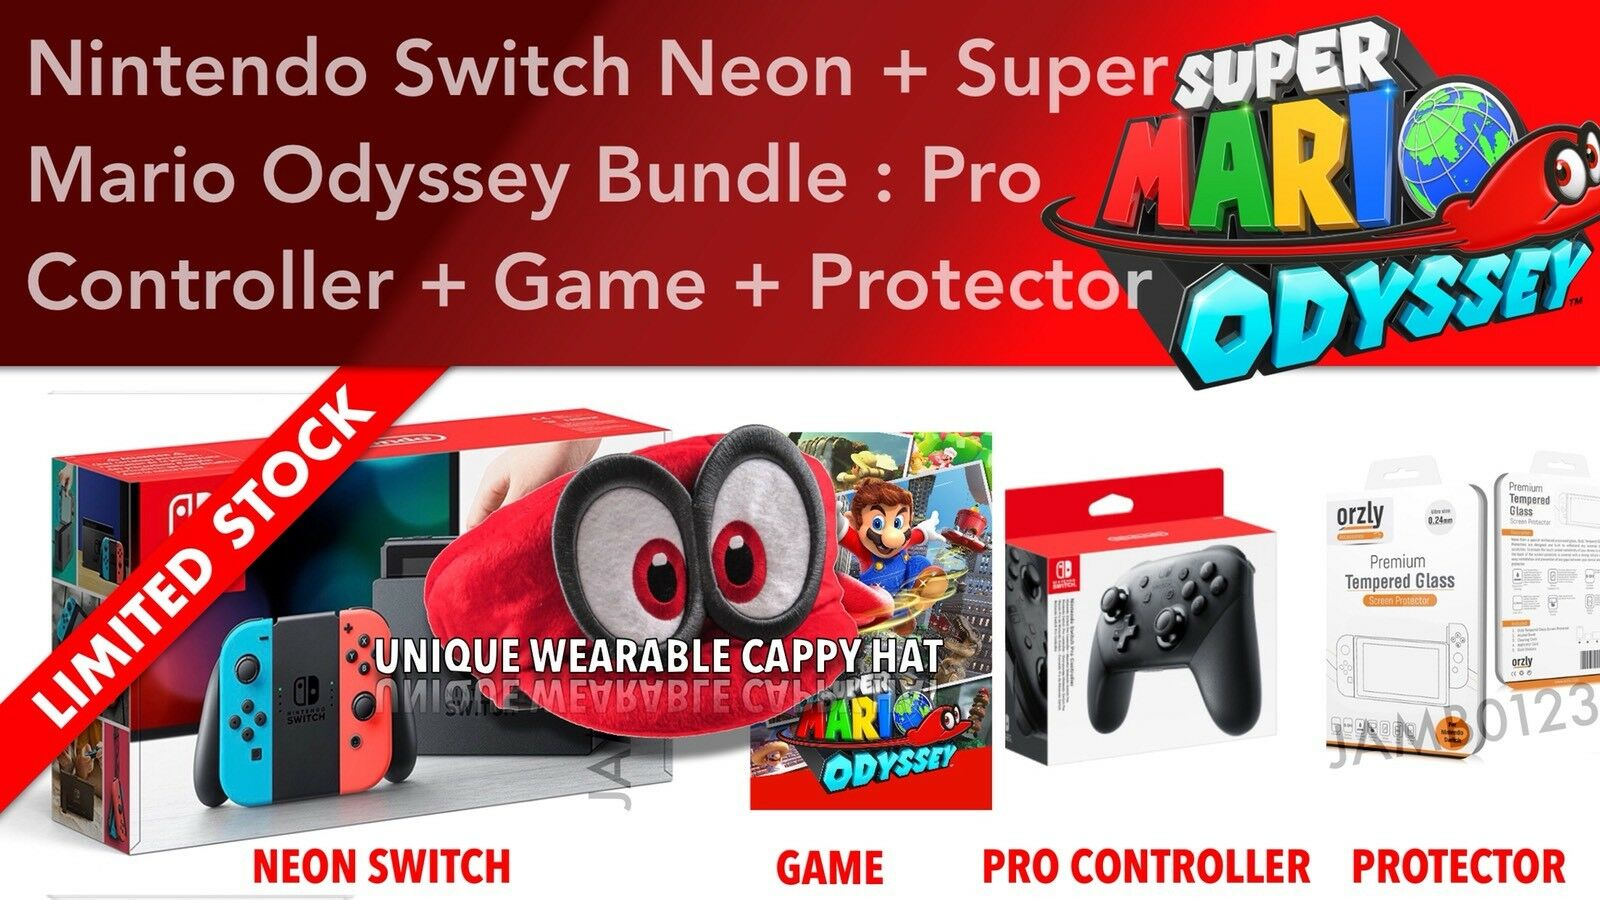 Nintendo Switch Console Super Mario Odyssey Pro Controller Cappy Grey Bundle 2game 2amiibo 1 Of 6only 2 Available